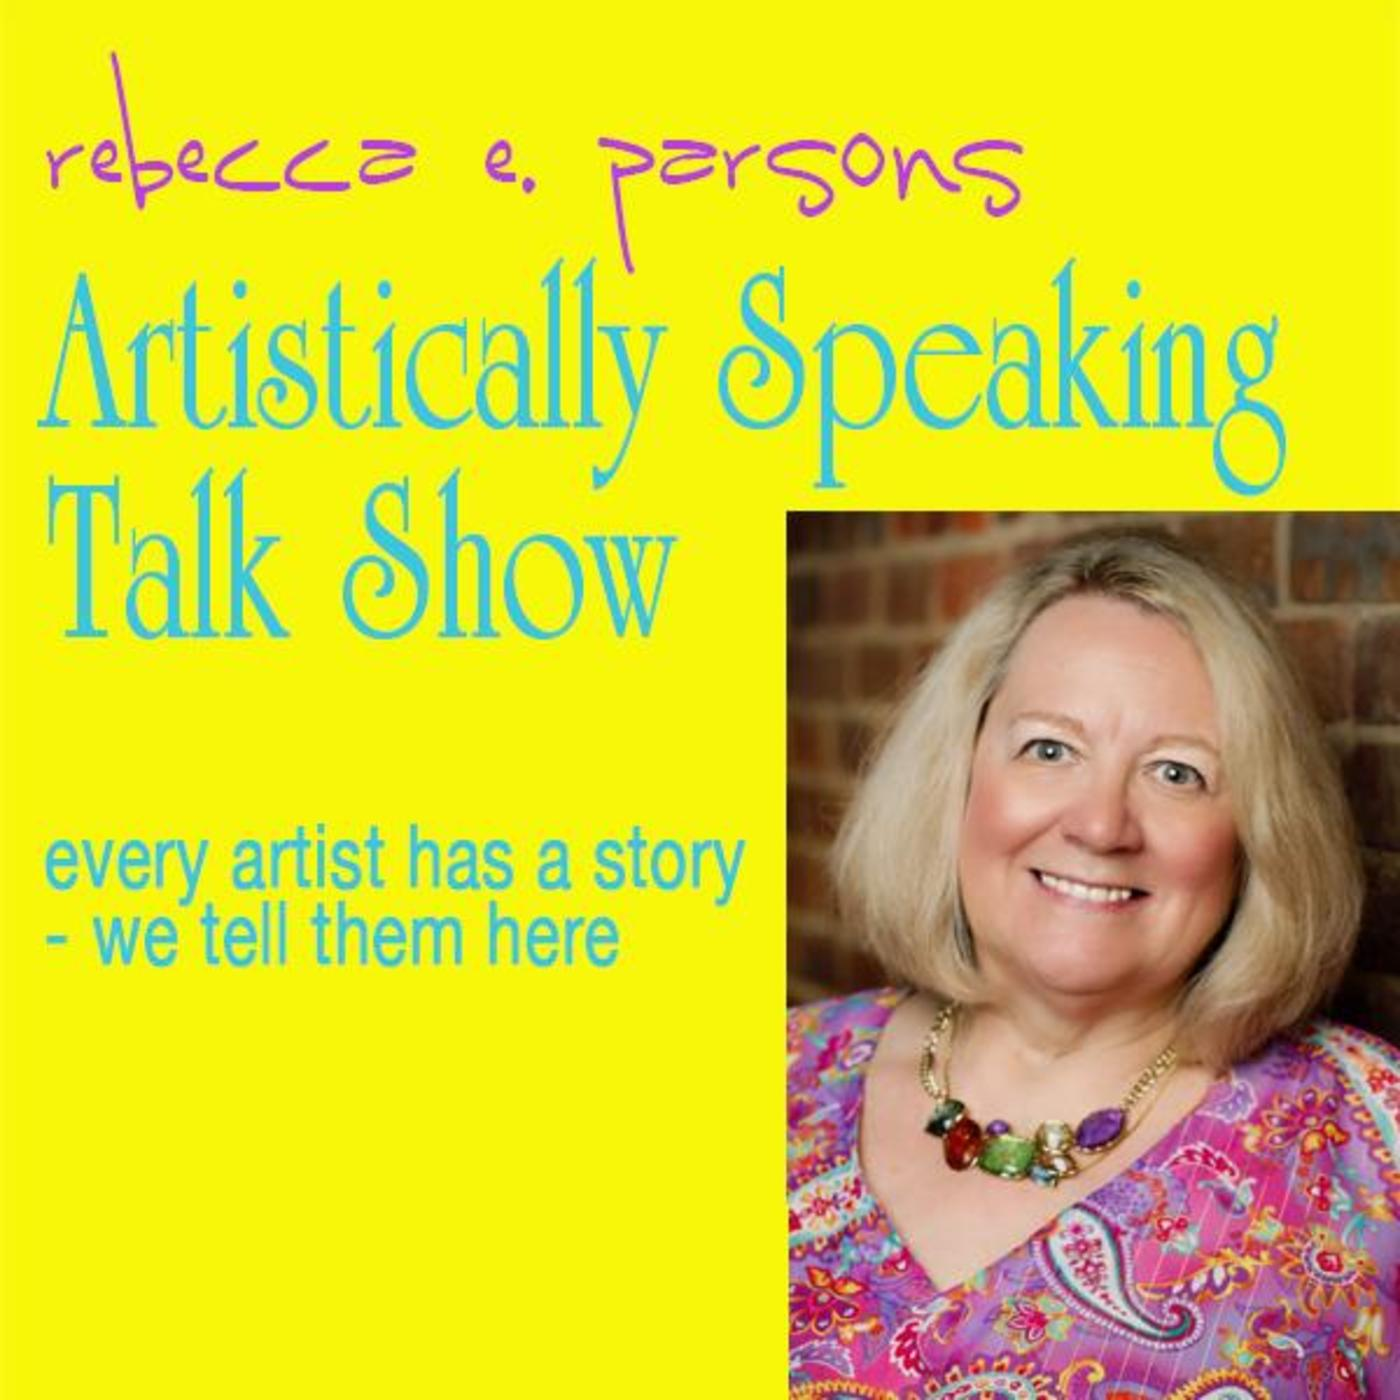 Artistically Speaking Talk Show/Cre8Tive Compass